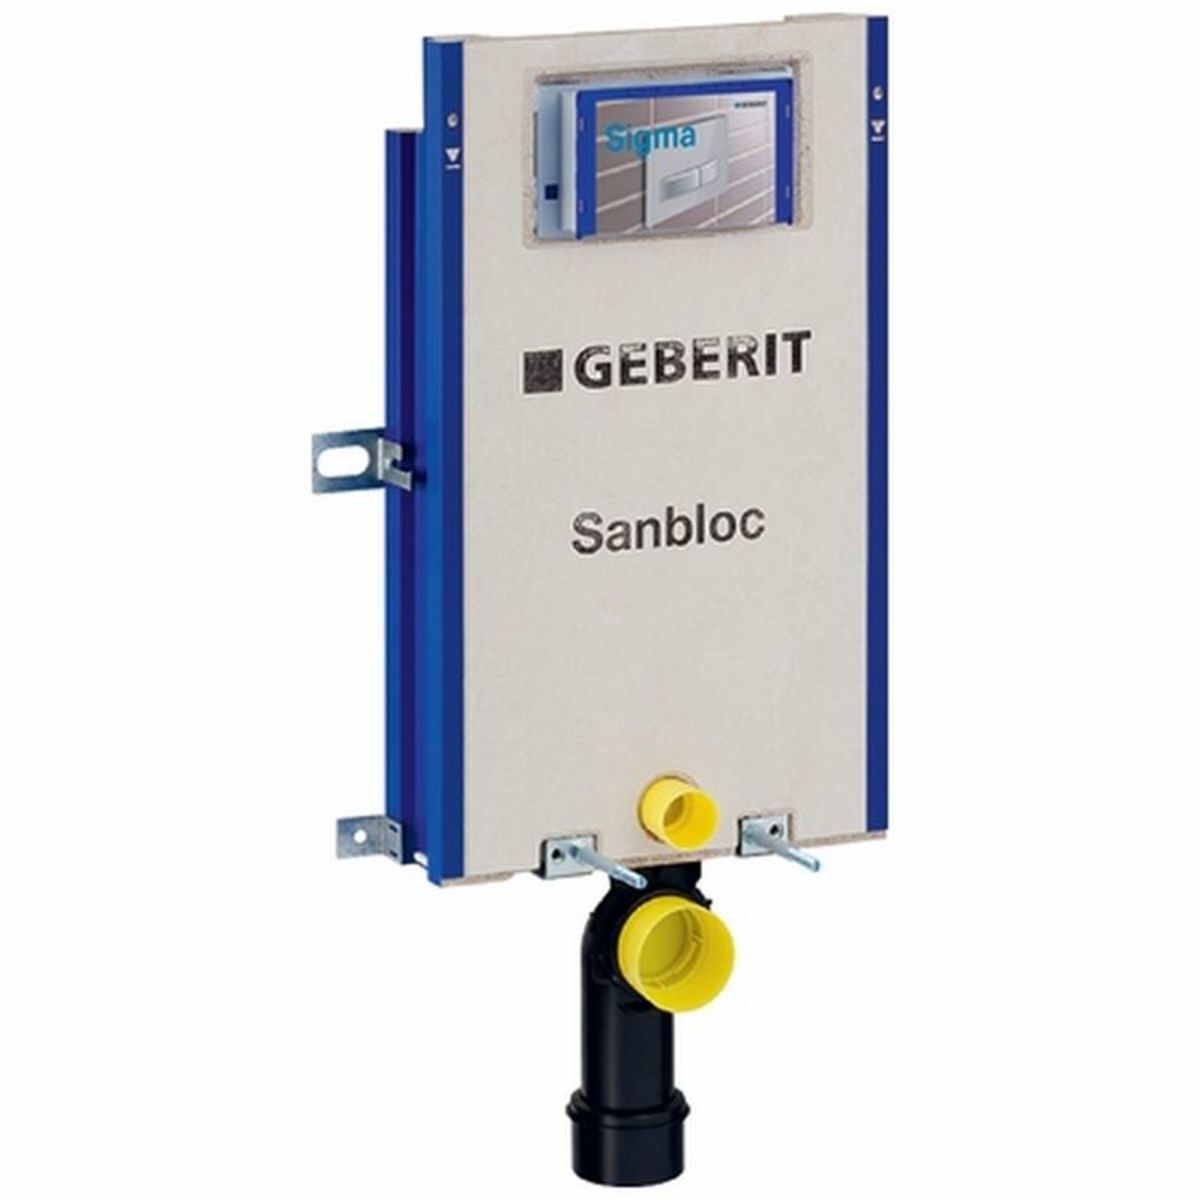 Geberit sanbloc wc element h112 zonder vloersteunen voor for Geberit products